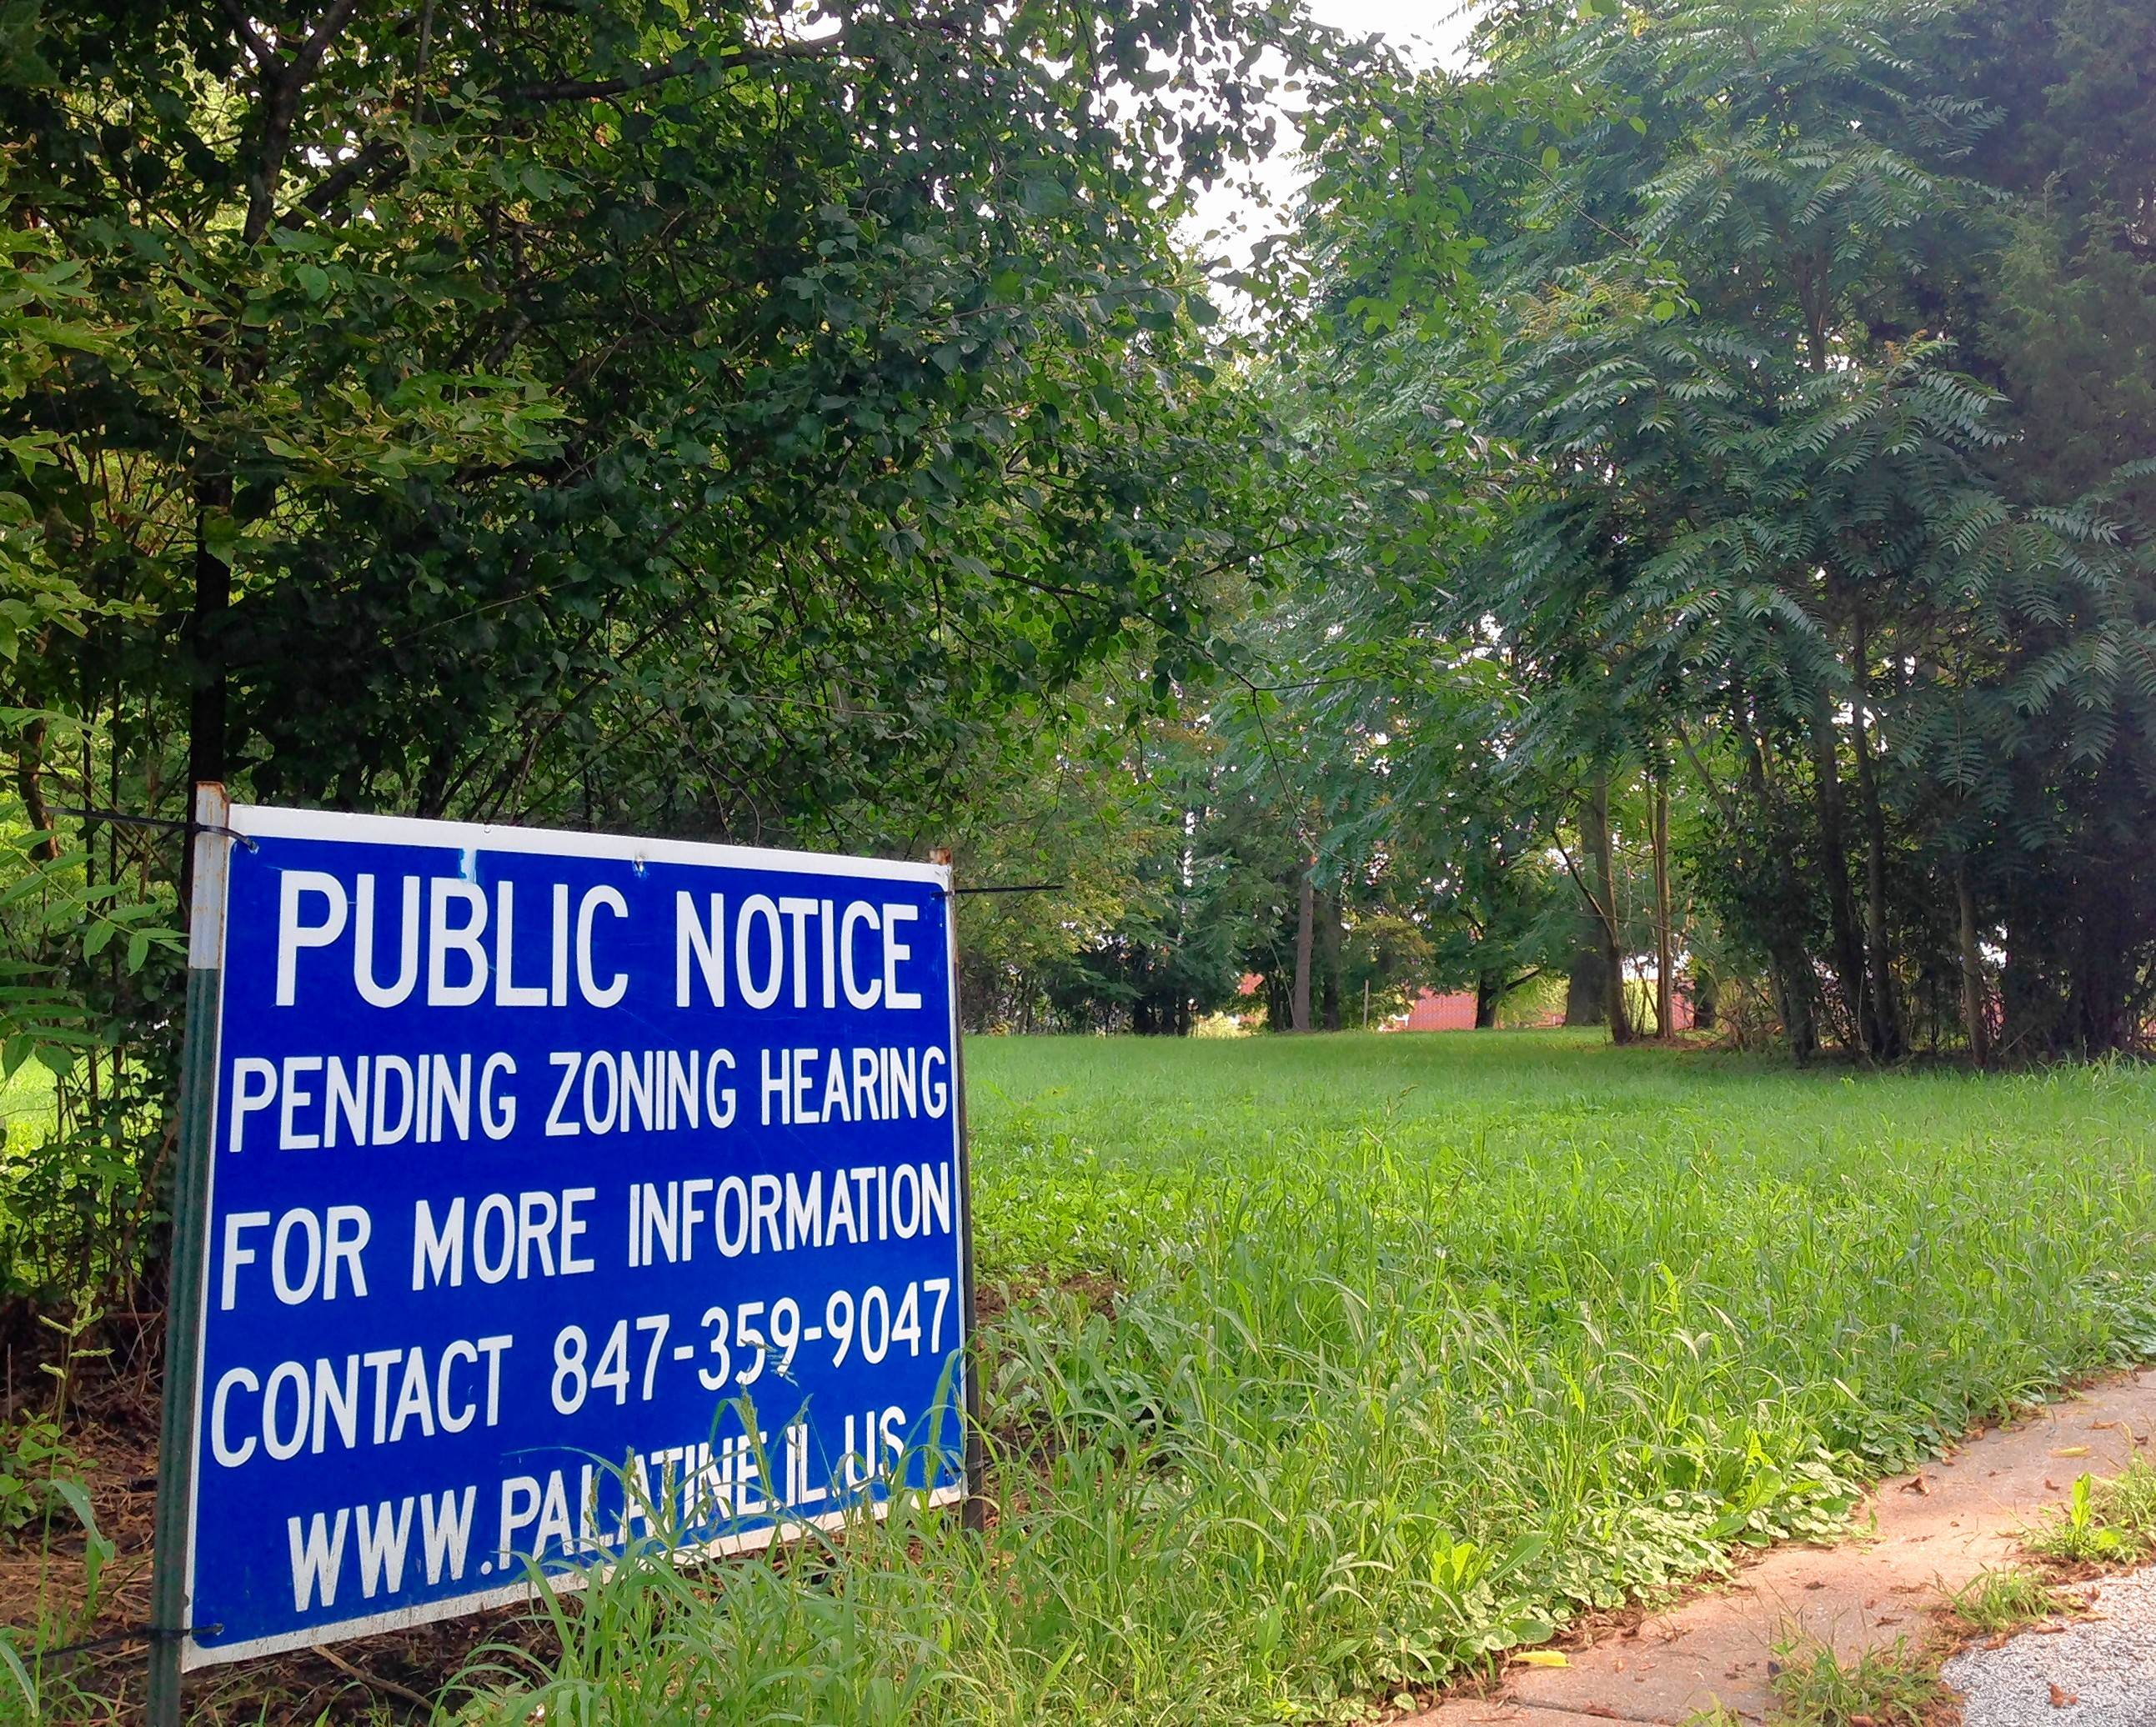 A 12-unit townhouse complex proposal that drew resident concerns about additional traffic and other issues will proceed as a result of the Palatine village council's approval this week.